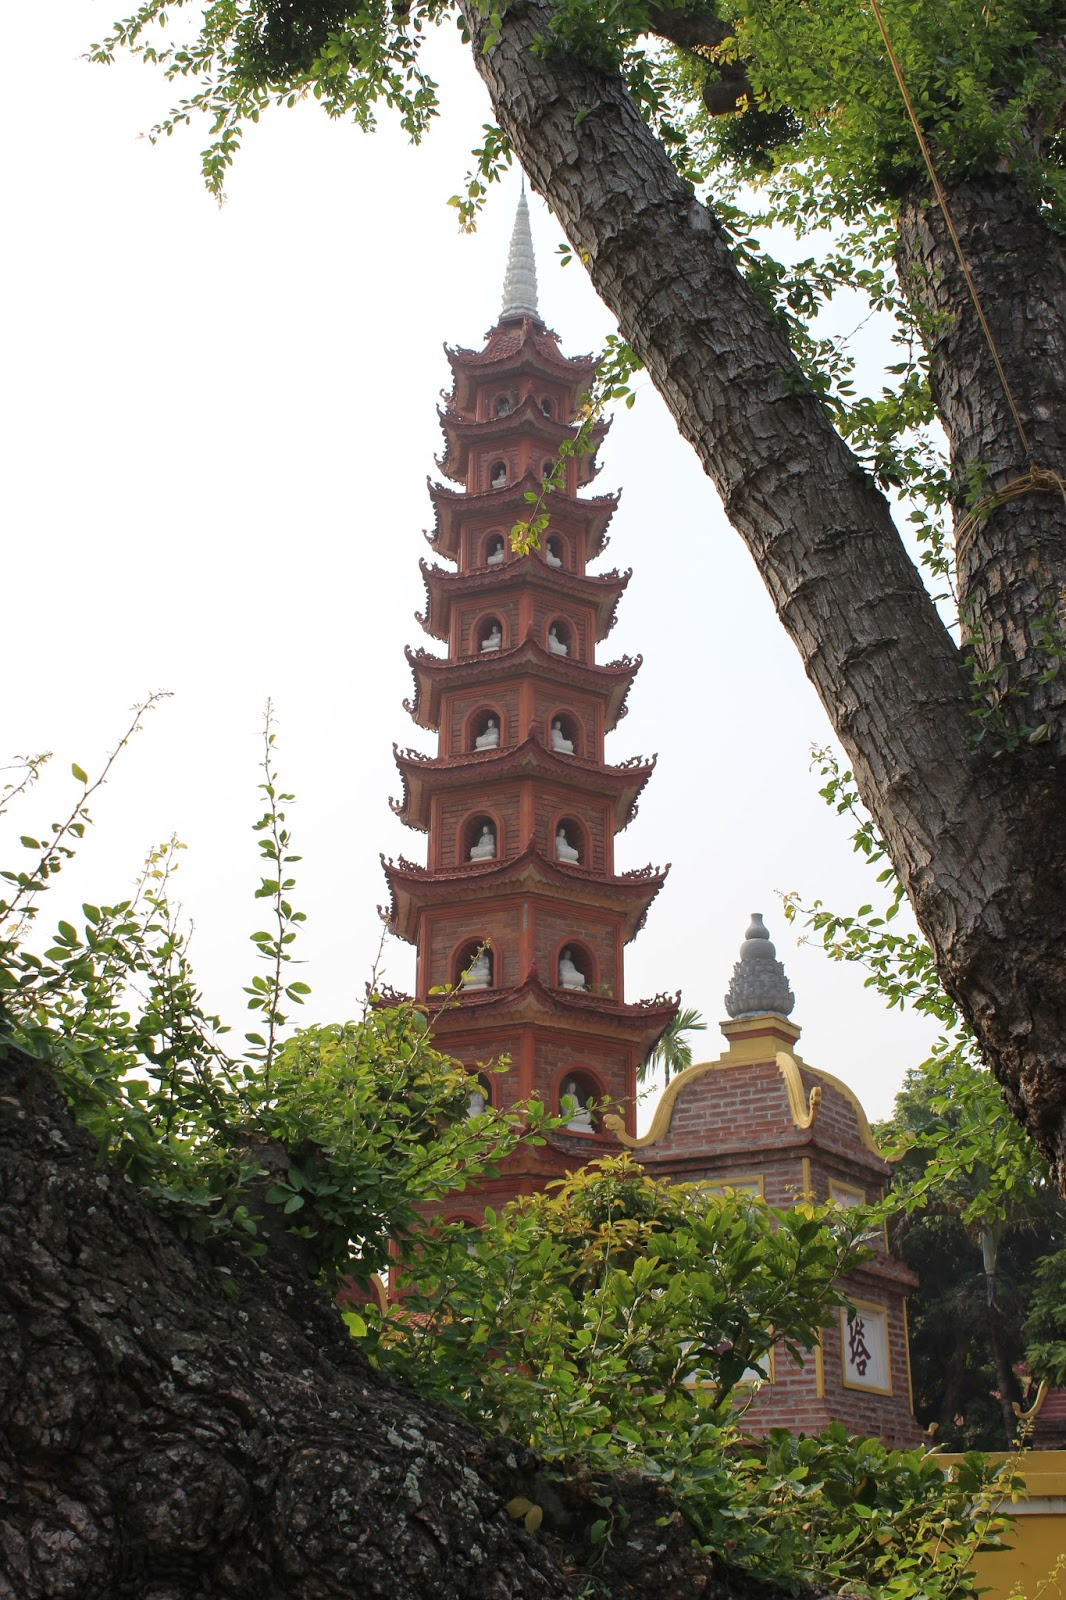 Tall pagoda in Hanoi